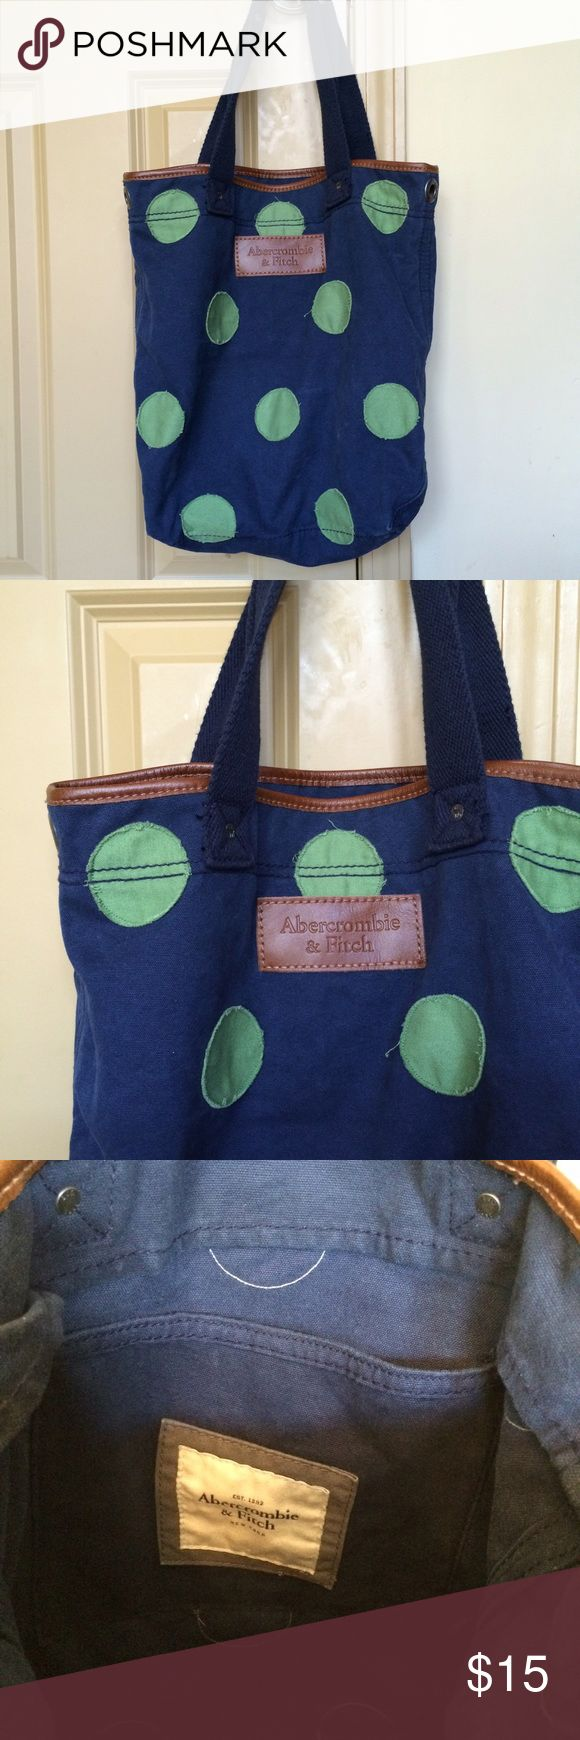 "Abercrombie and Fitch tote bag Abercrombie navy with green polka dot canvas tote. 14""h x 12""w x 5""d with 9"" handle drop. Grommets on each side. One flap pocket on the inside. Great condition. Abercrombie & Fitch Bags Totes"